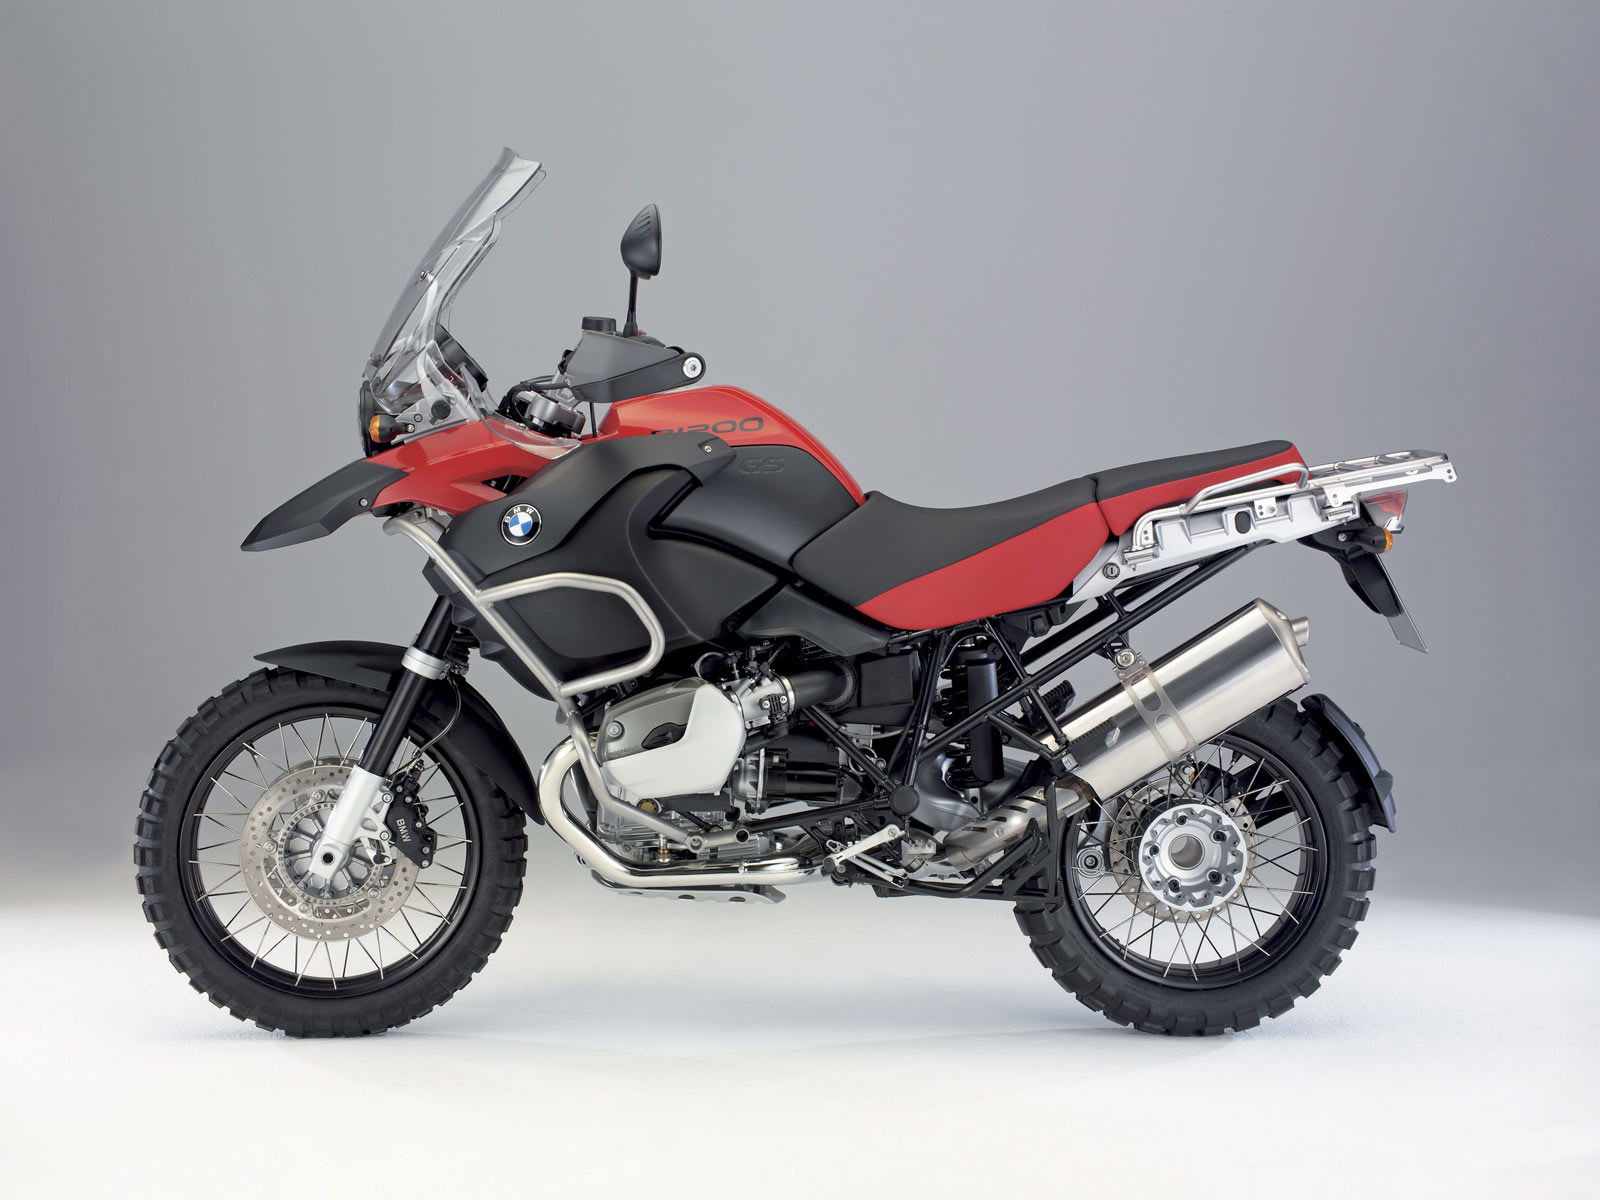 specifications and 2008 bmw r 1200 gs adventures motorcycle wallpapers